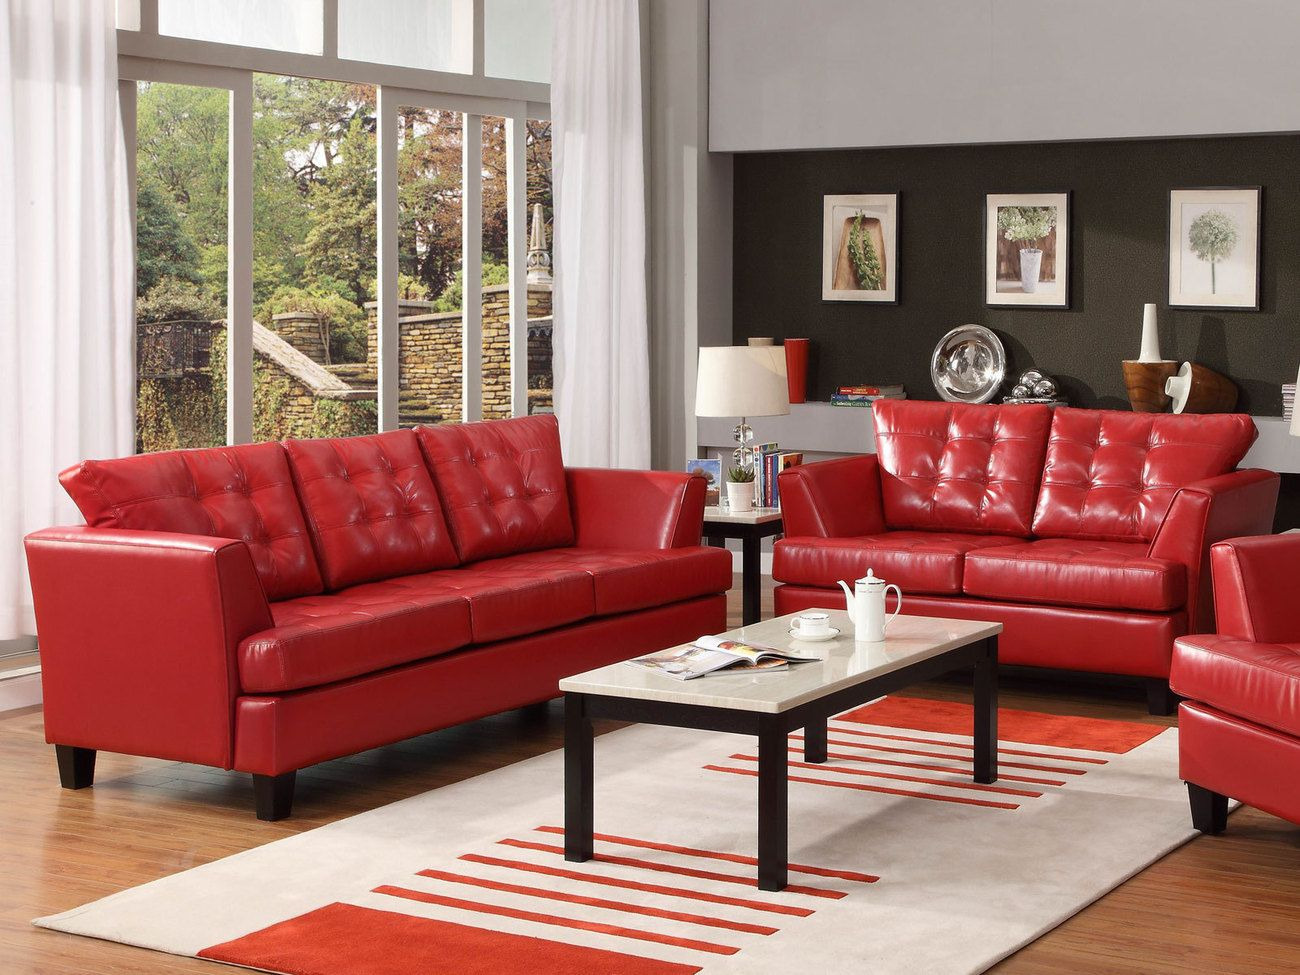 living room ideas with leather furniture%0A Room